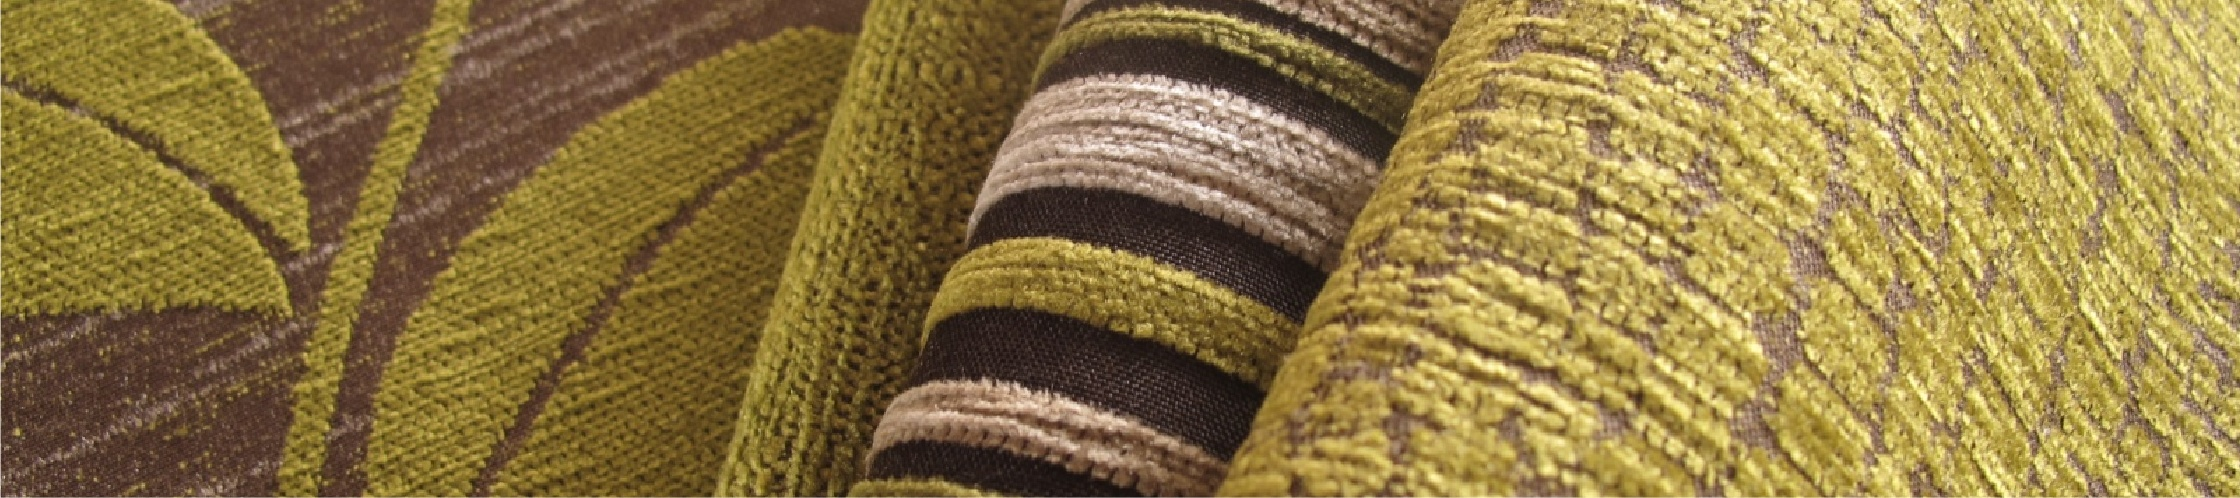 Where To Buy Upholstery Fabric Online Loome Fabrics ~ Where To Buy Sofa Fabric